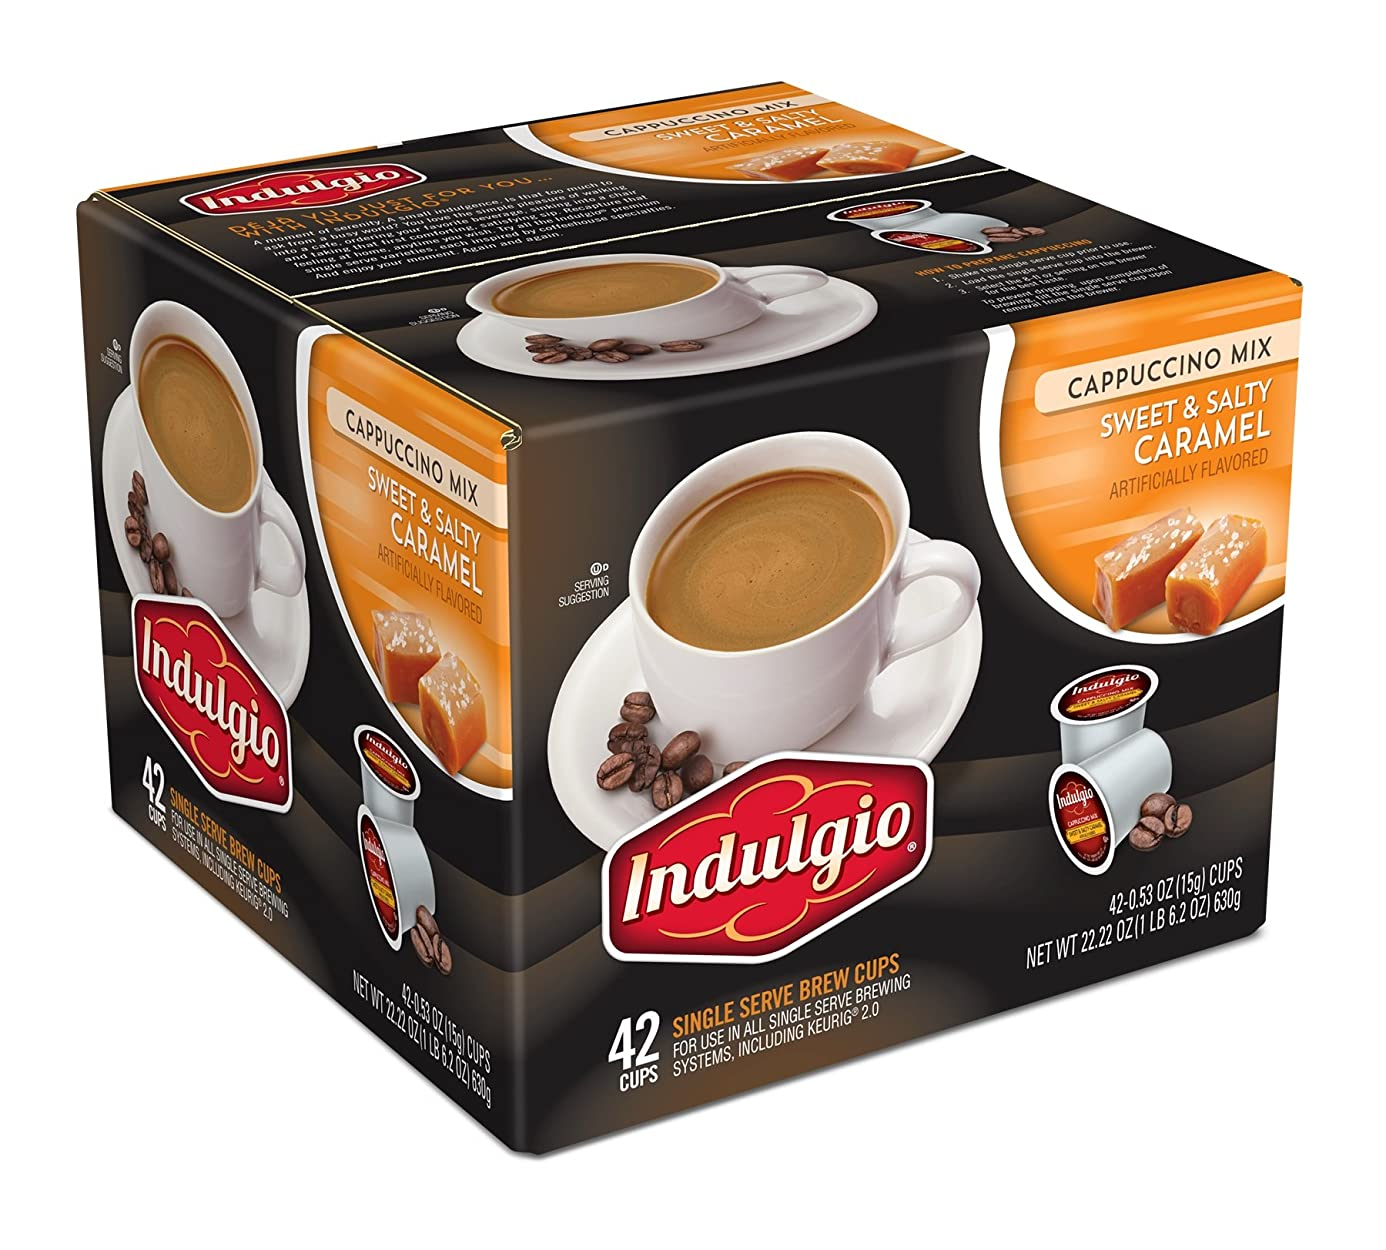 Indulgio Cappuccino Sweet and Salty Caramel, 42 Count iuk7158800